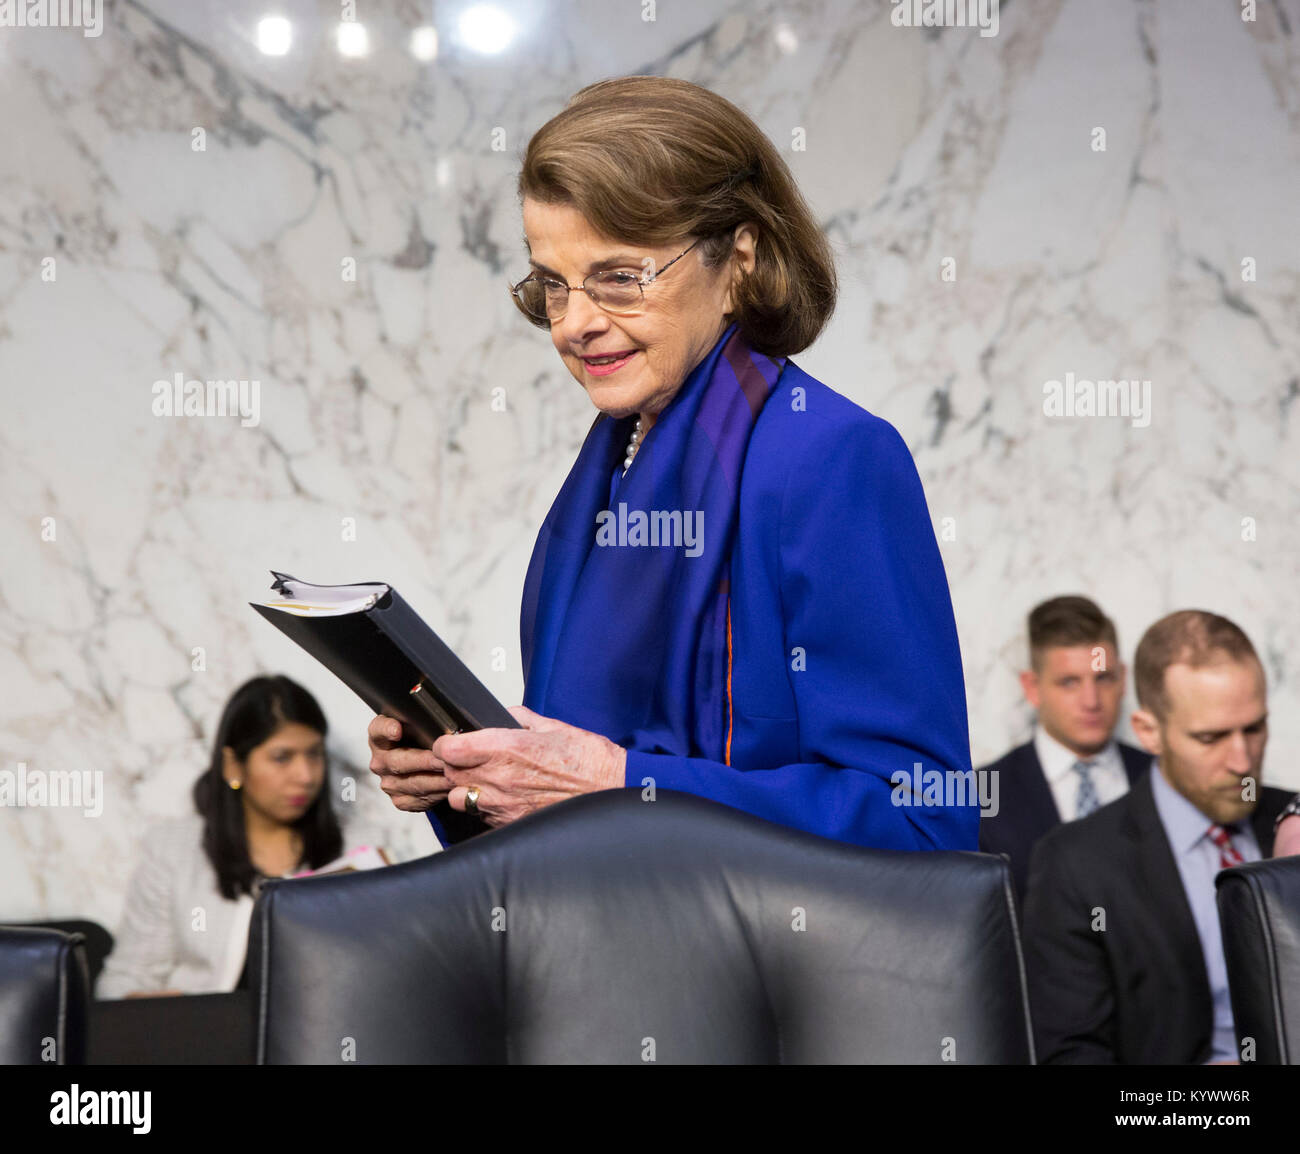 Washington, USA. 16th Jan, 2018. Senator Dianne Feinstein(D-CA) arrives for a hearing of the Senate Judiciary Committee - Stock Image